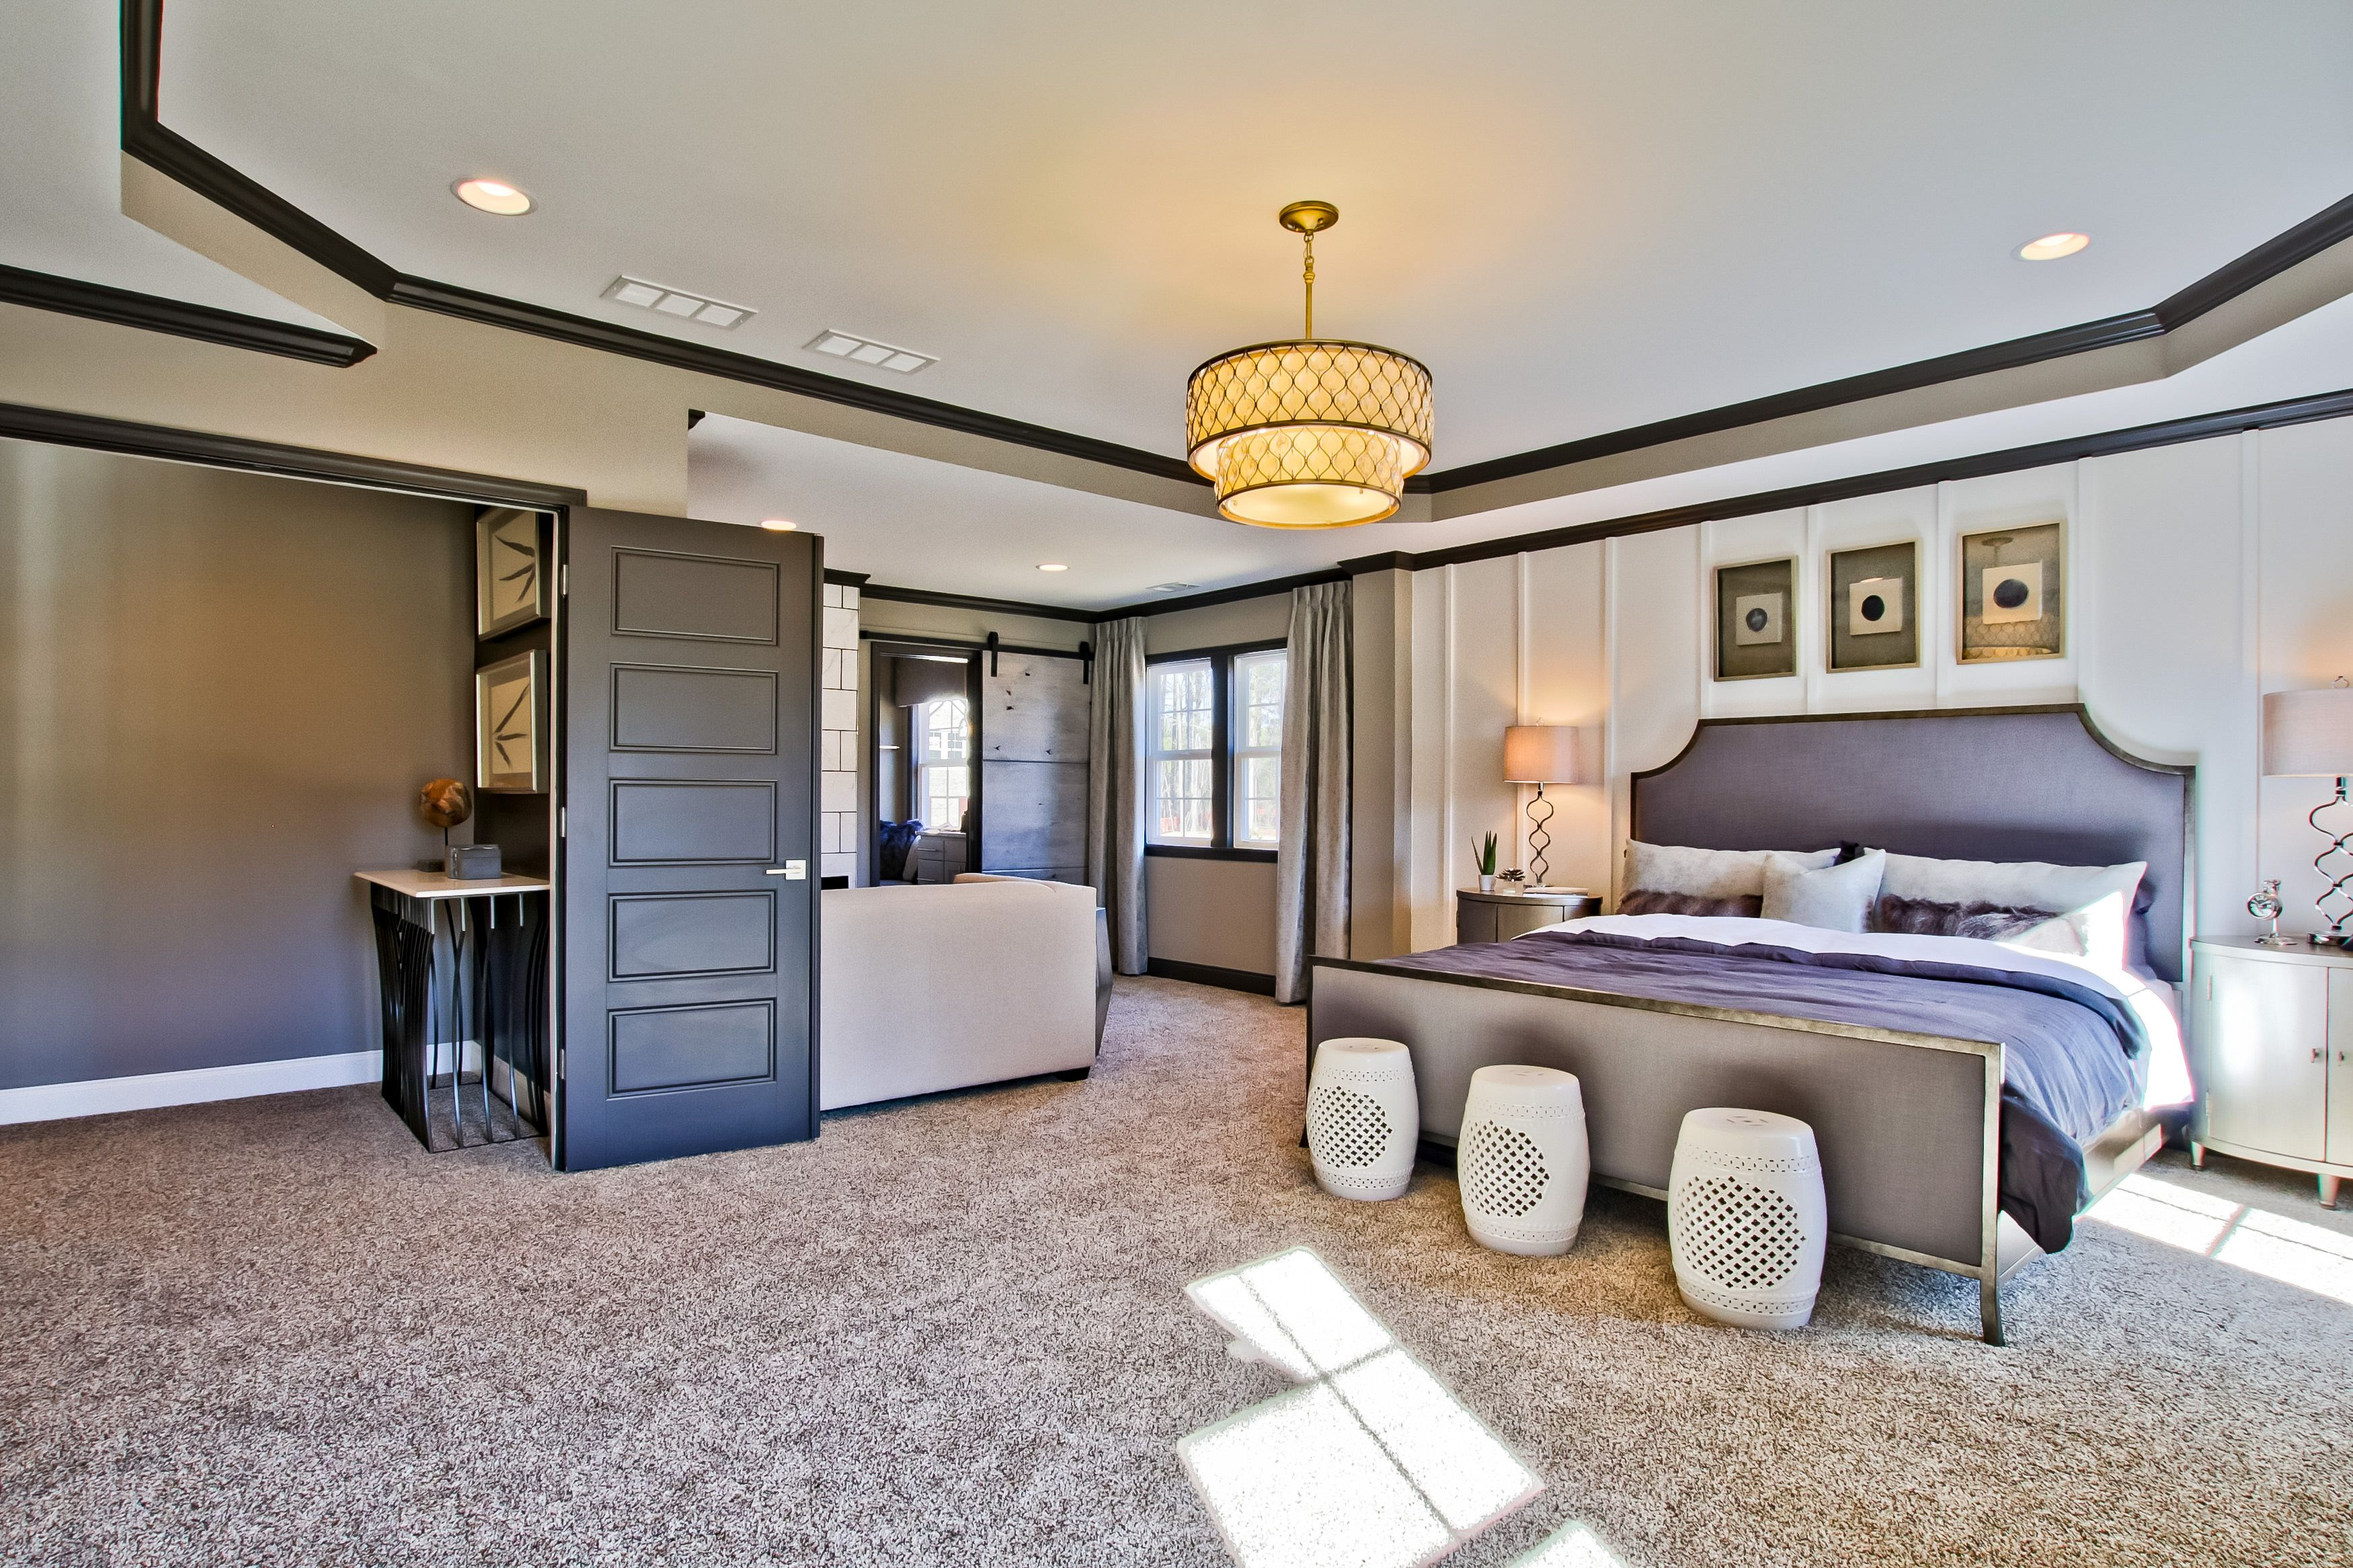 Enjoy This Large Master Bedroom With Trey Ceilings A Sitting Area